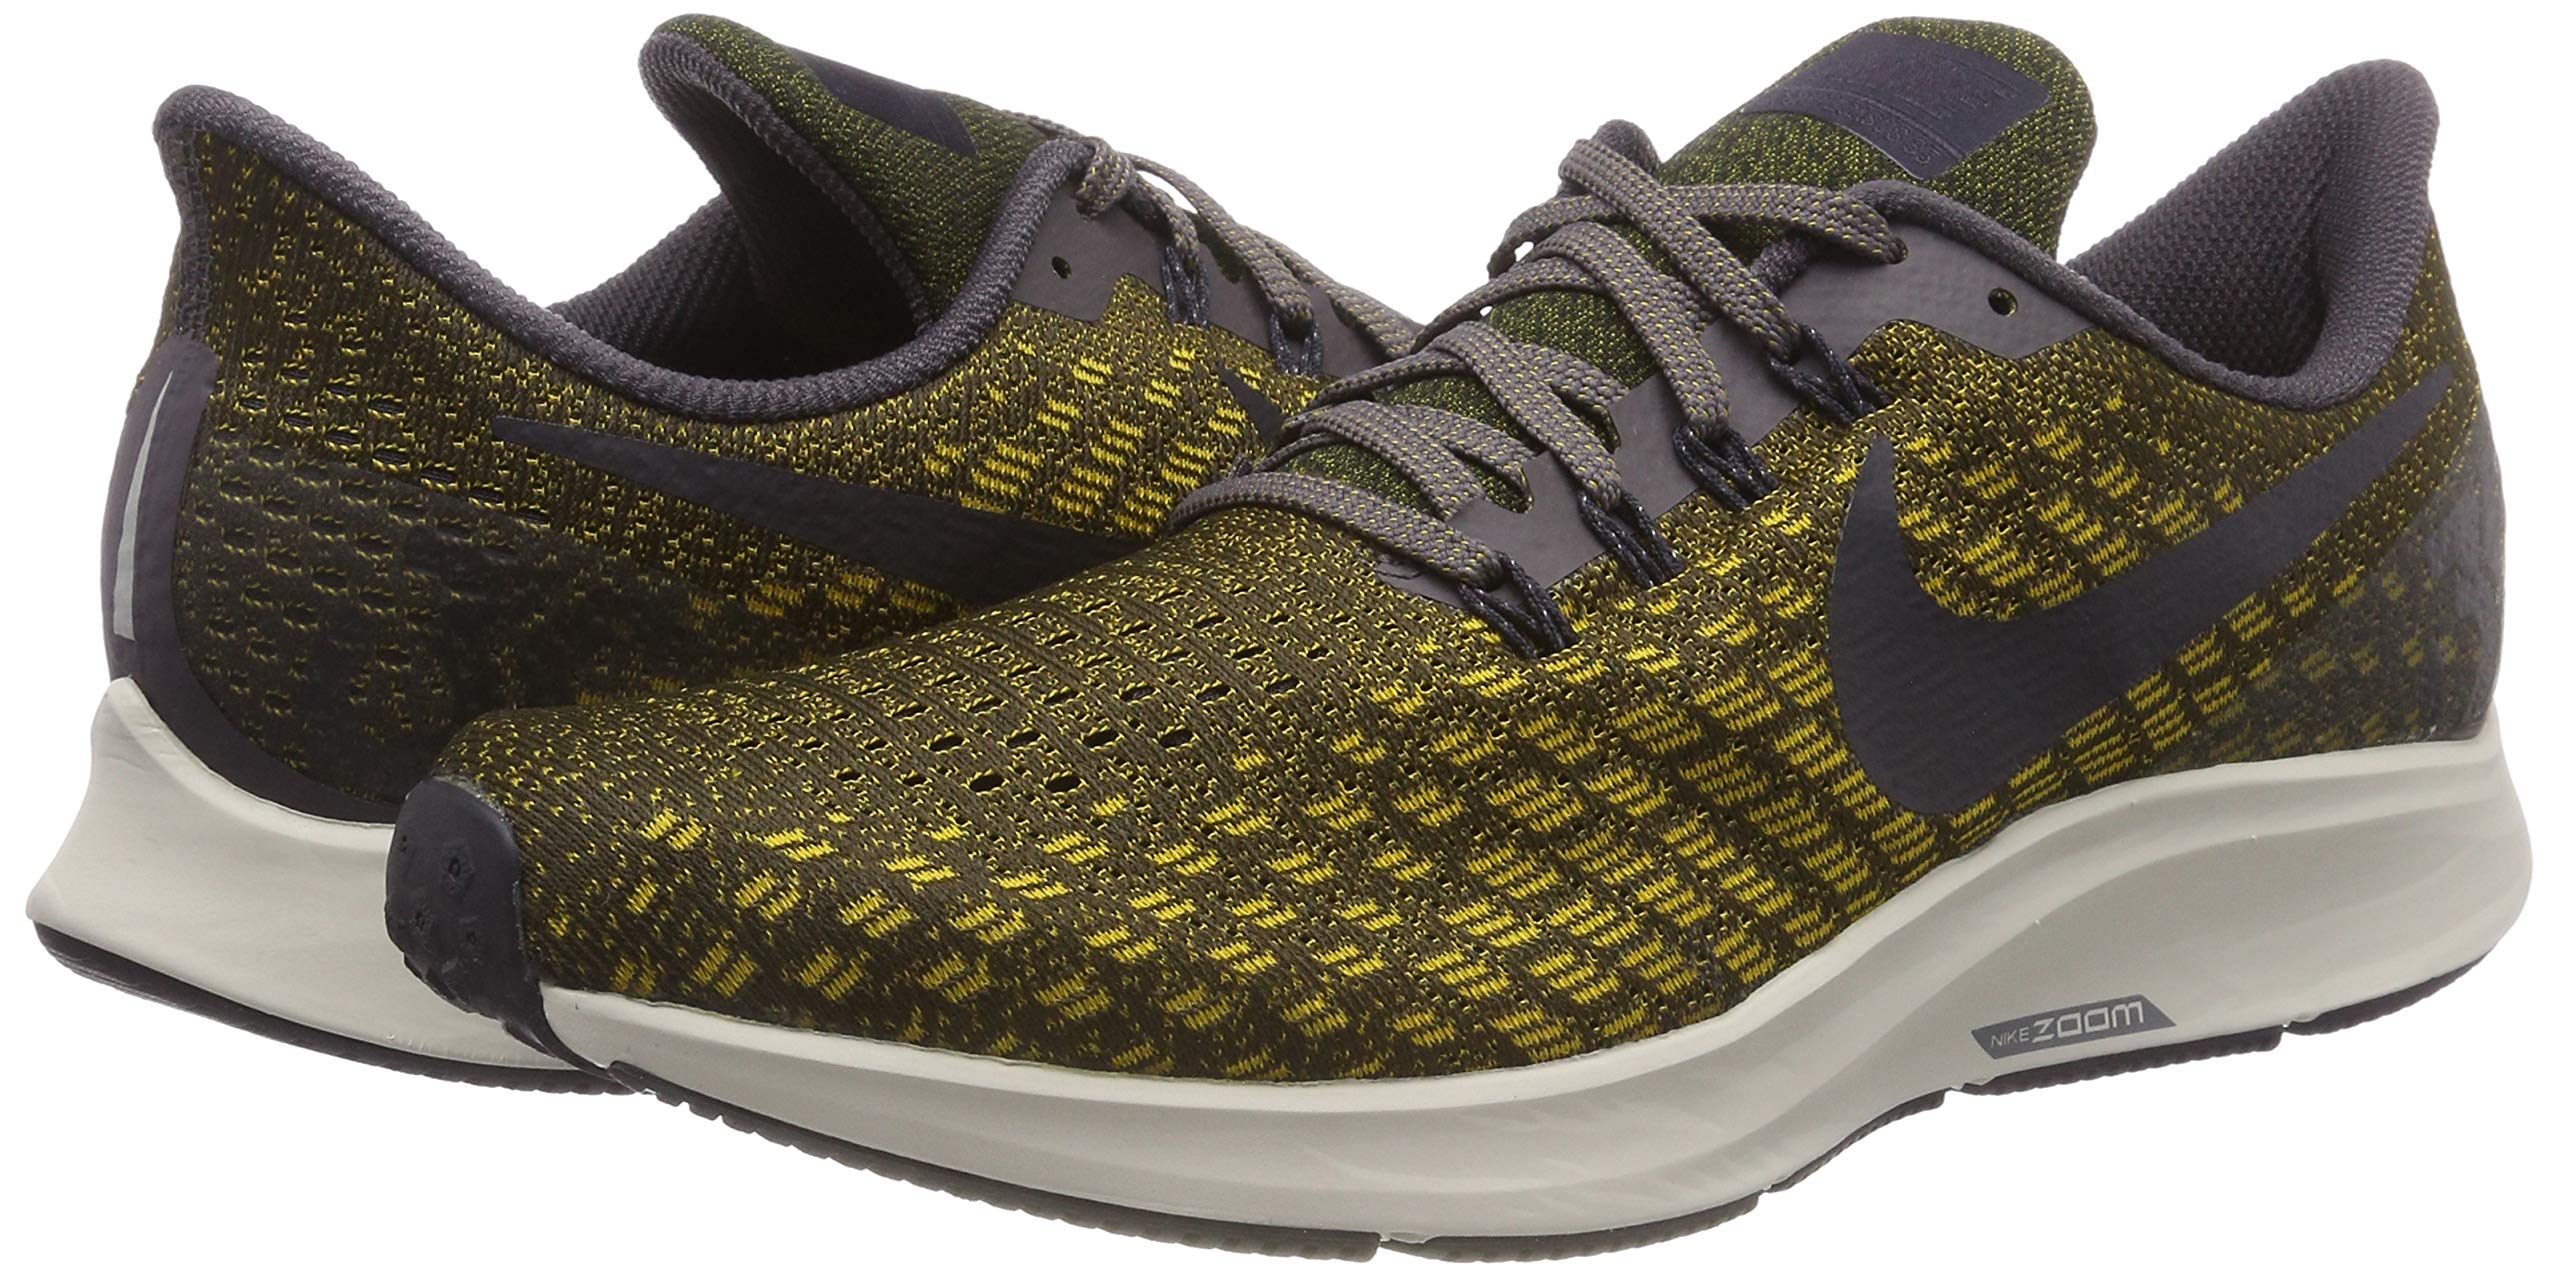 NIKE Men's Air Zoom Pegasus 35 Running Shoes (6, Olive) by Nike (Image #5)